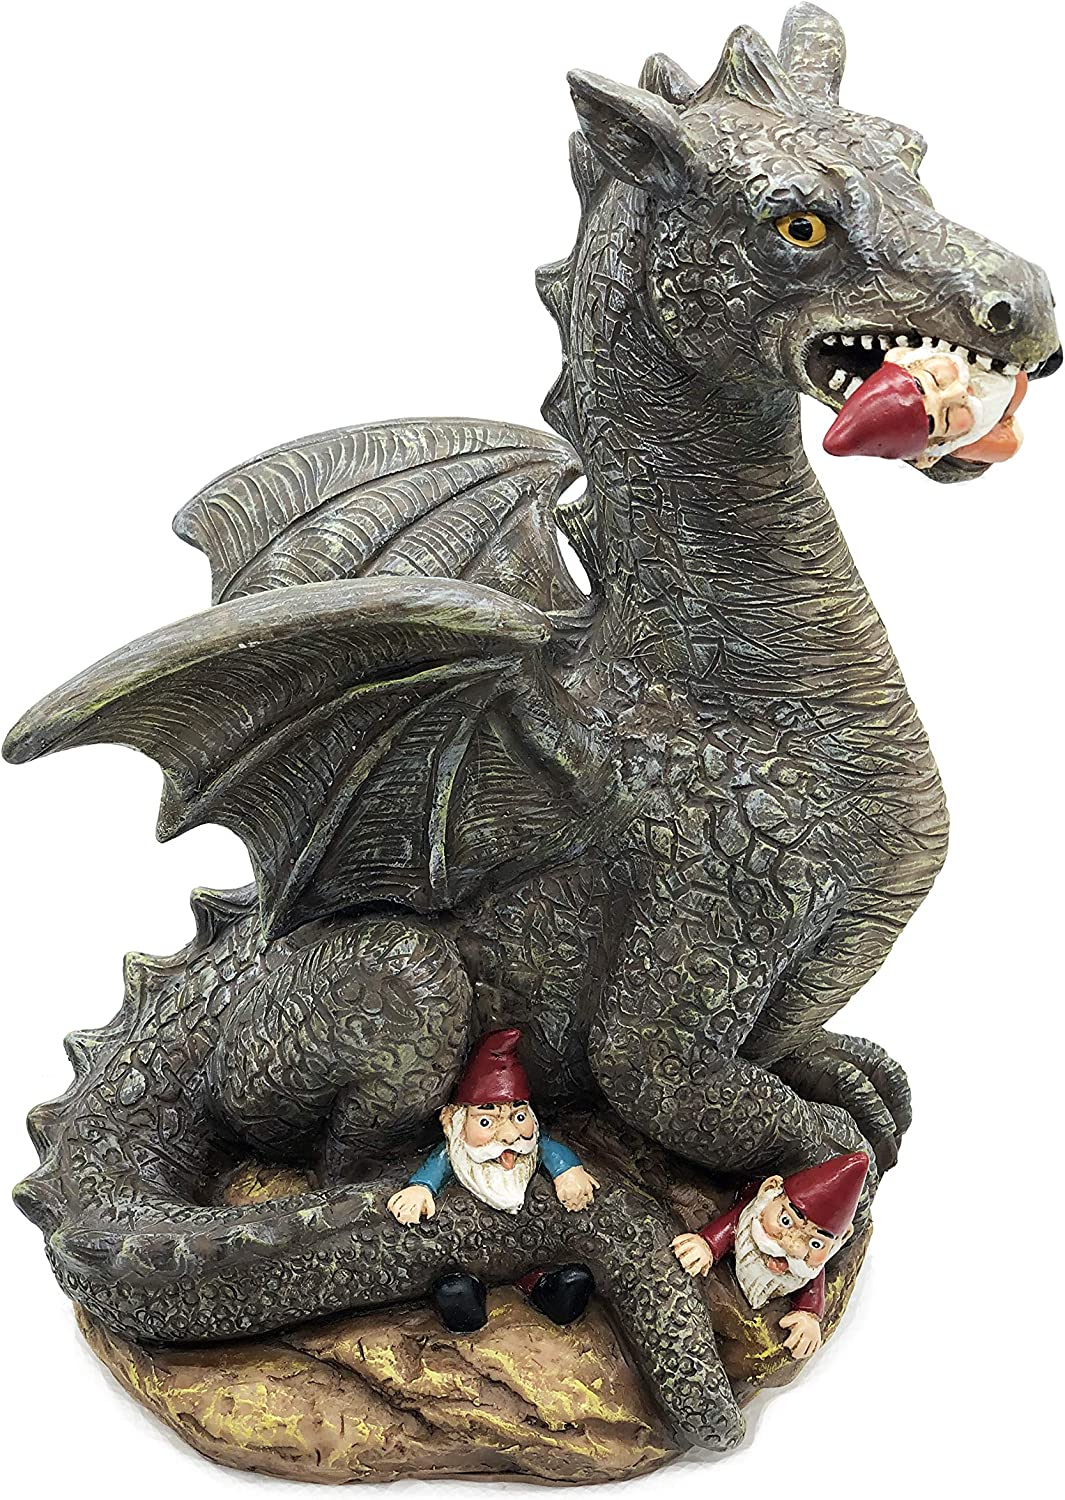 FICITI The Great Garden Gnome Massacre, Angry Dragon Eating Gnomes, 10 Inches Tall